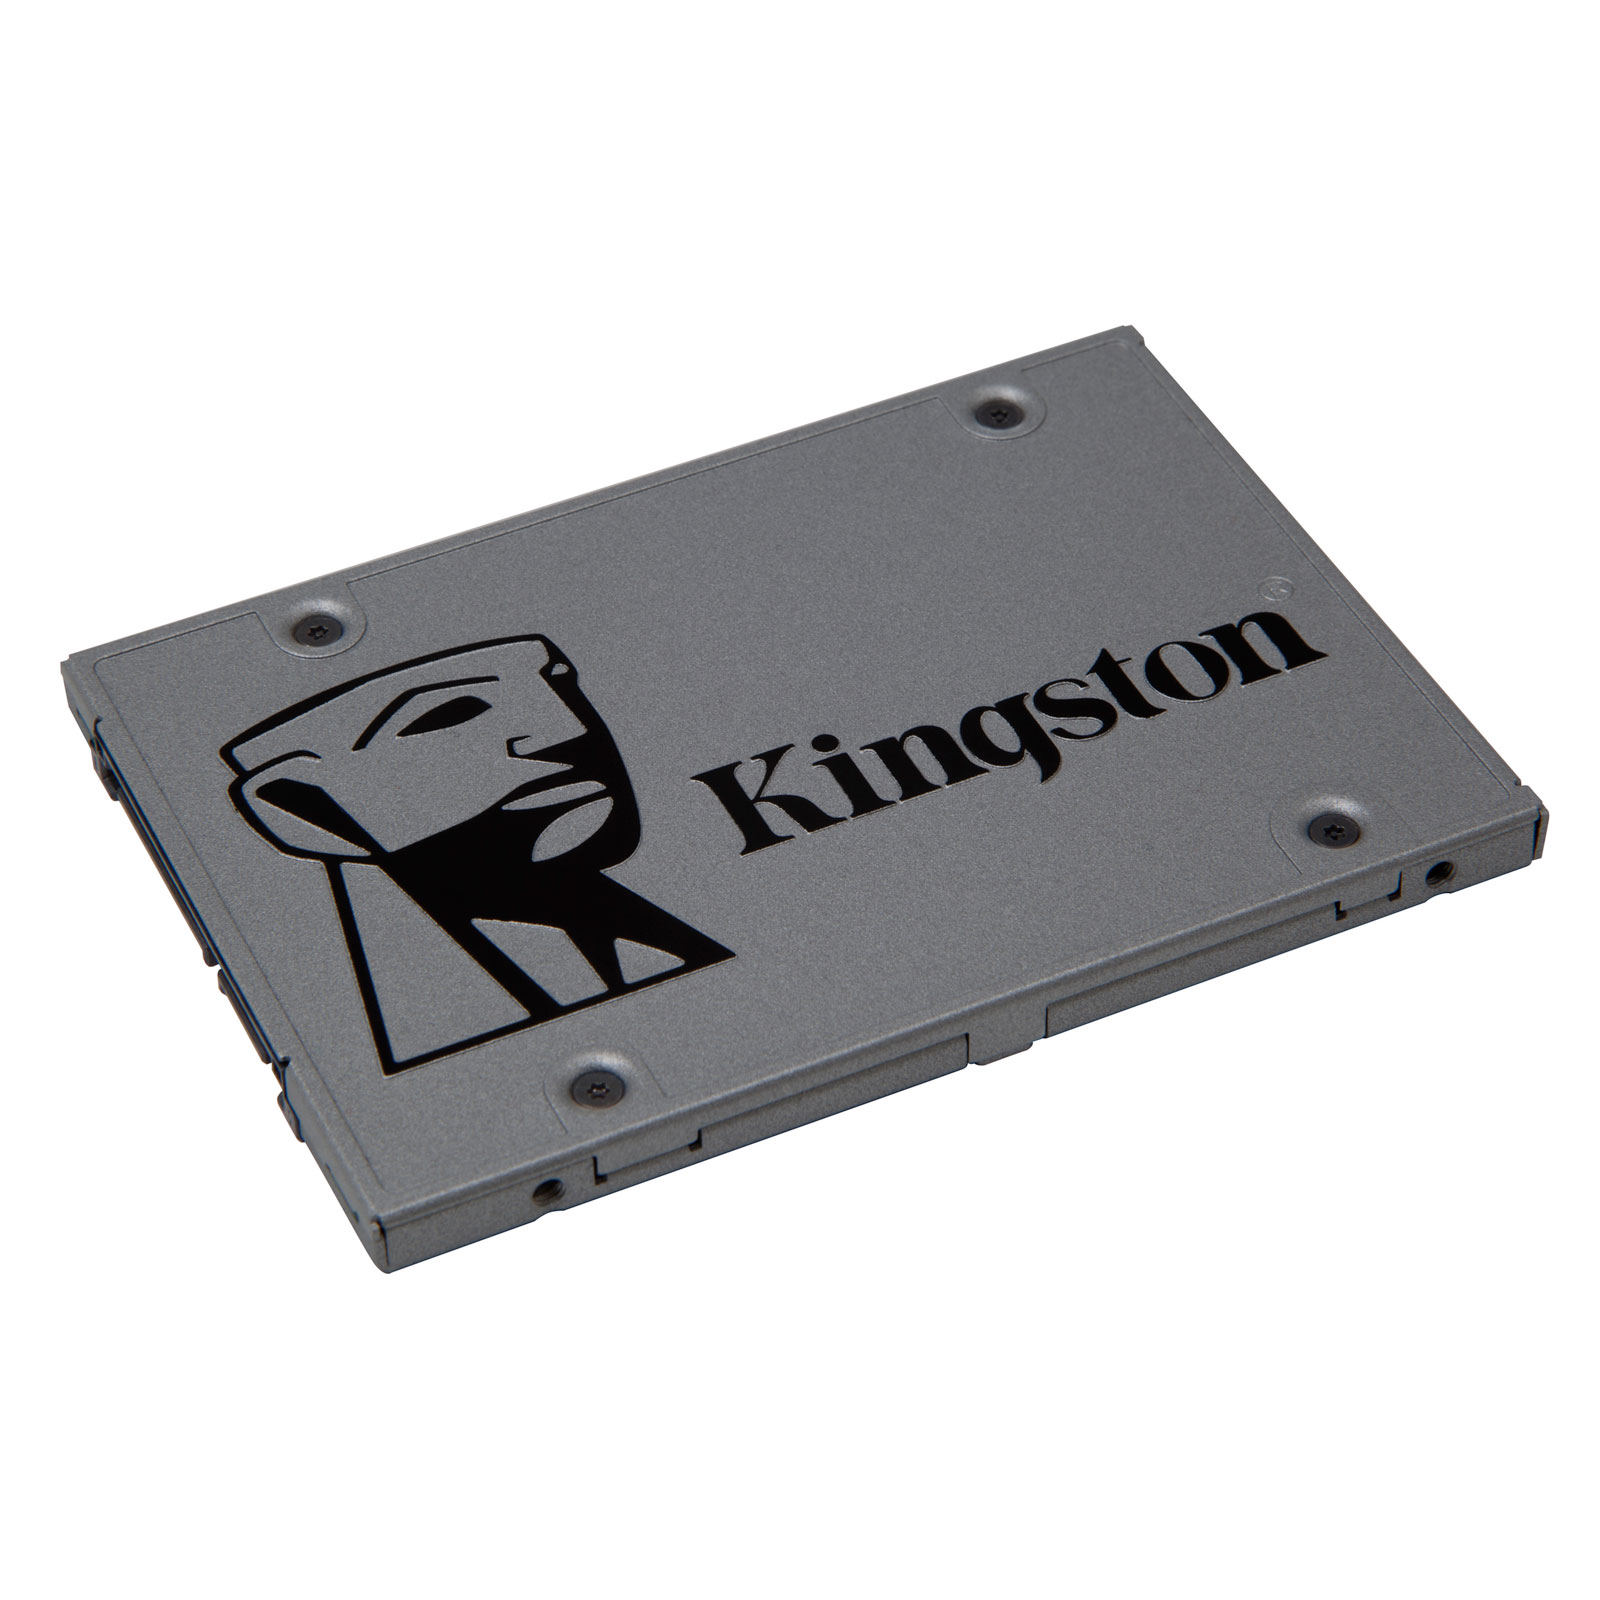 "Disque SSD Kingston SSD UV500 1920 Go SSD 1920 Go 2.5"" 7mm Serial ATA 6Gb/s"